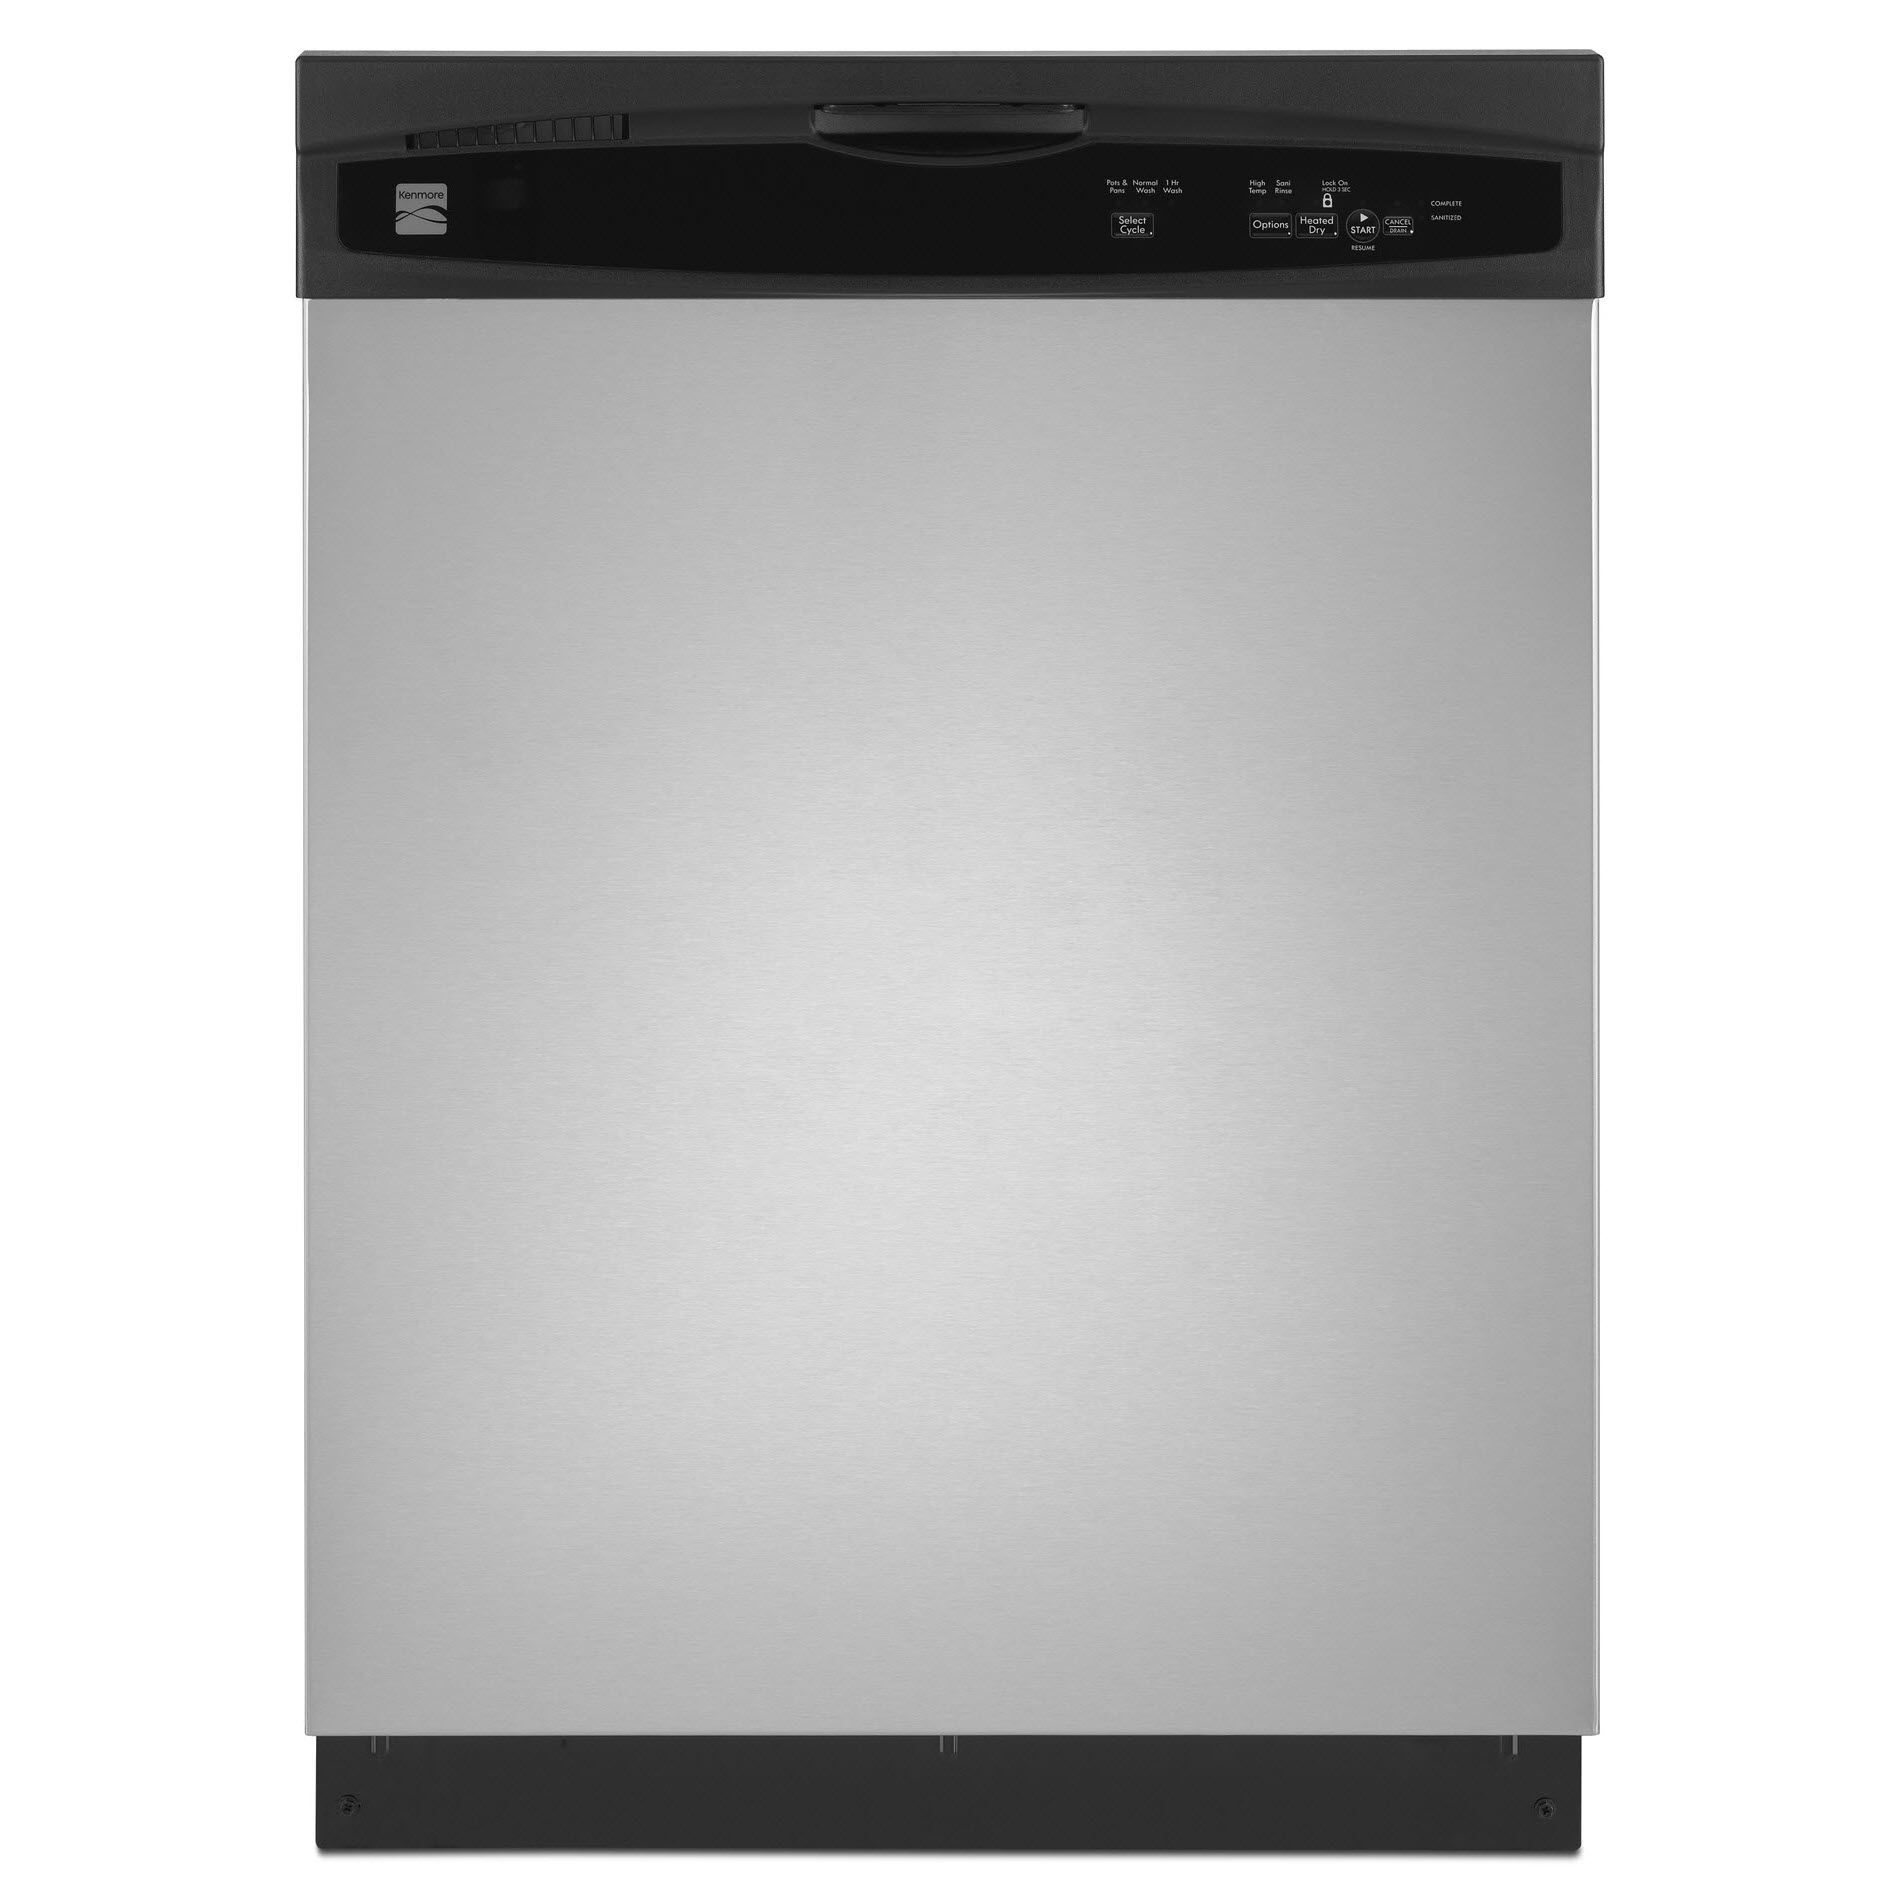 Pin By Pat Benson On Flip Stainless Steel Dishwasher Built In